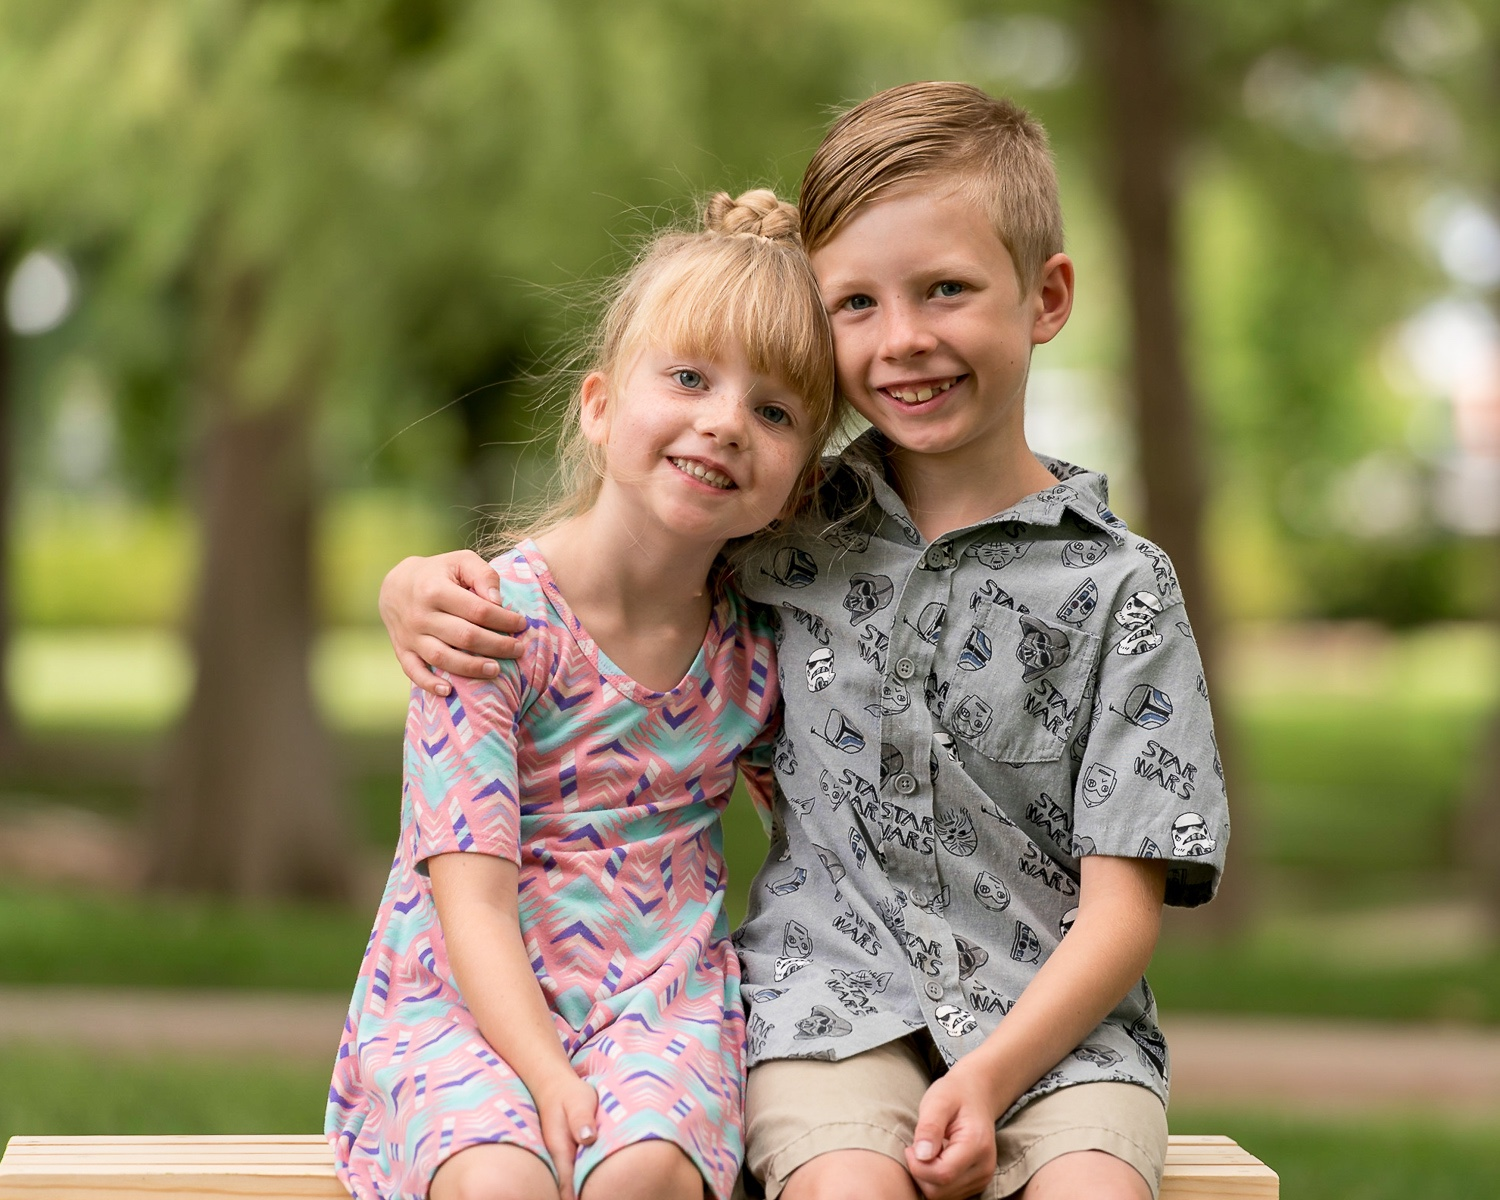 two kids with arms around each other - The Importance of Getting the Image Right In-Camera